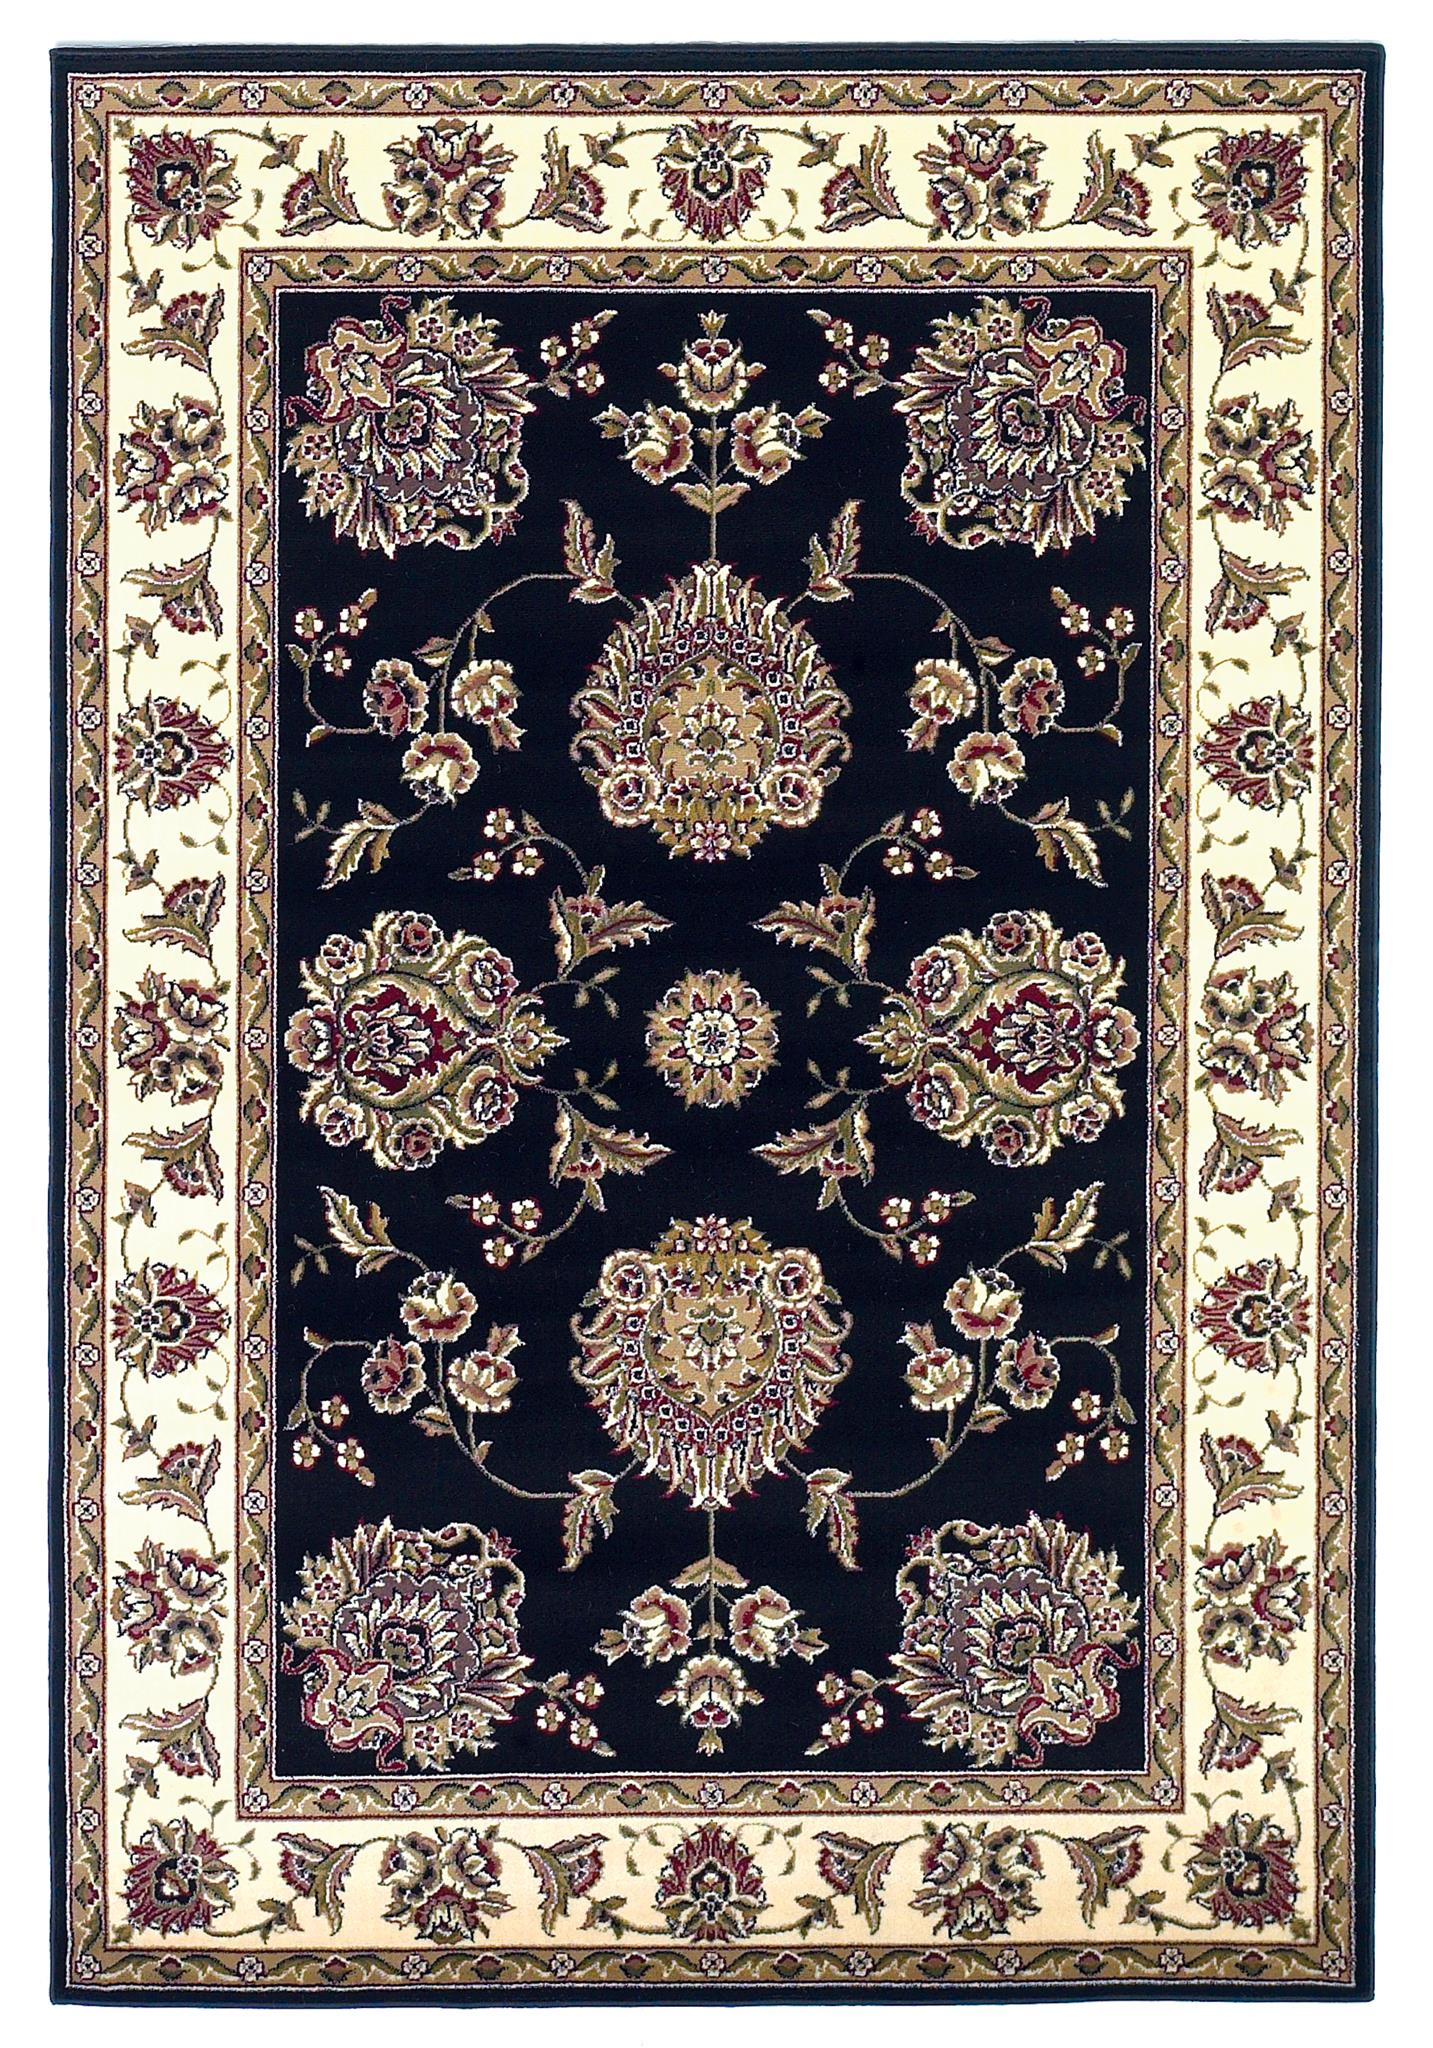 Cambridge 7339 Black/Ivory Floral Mahal